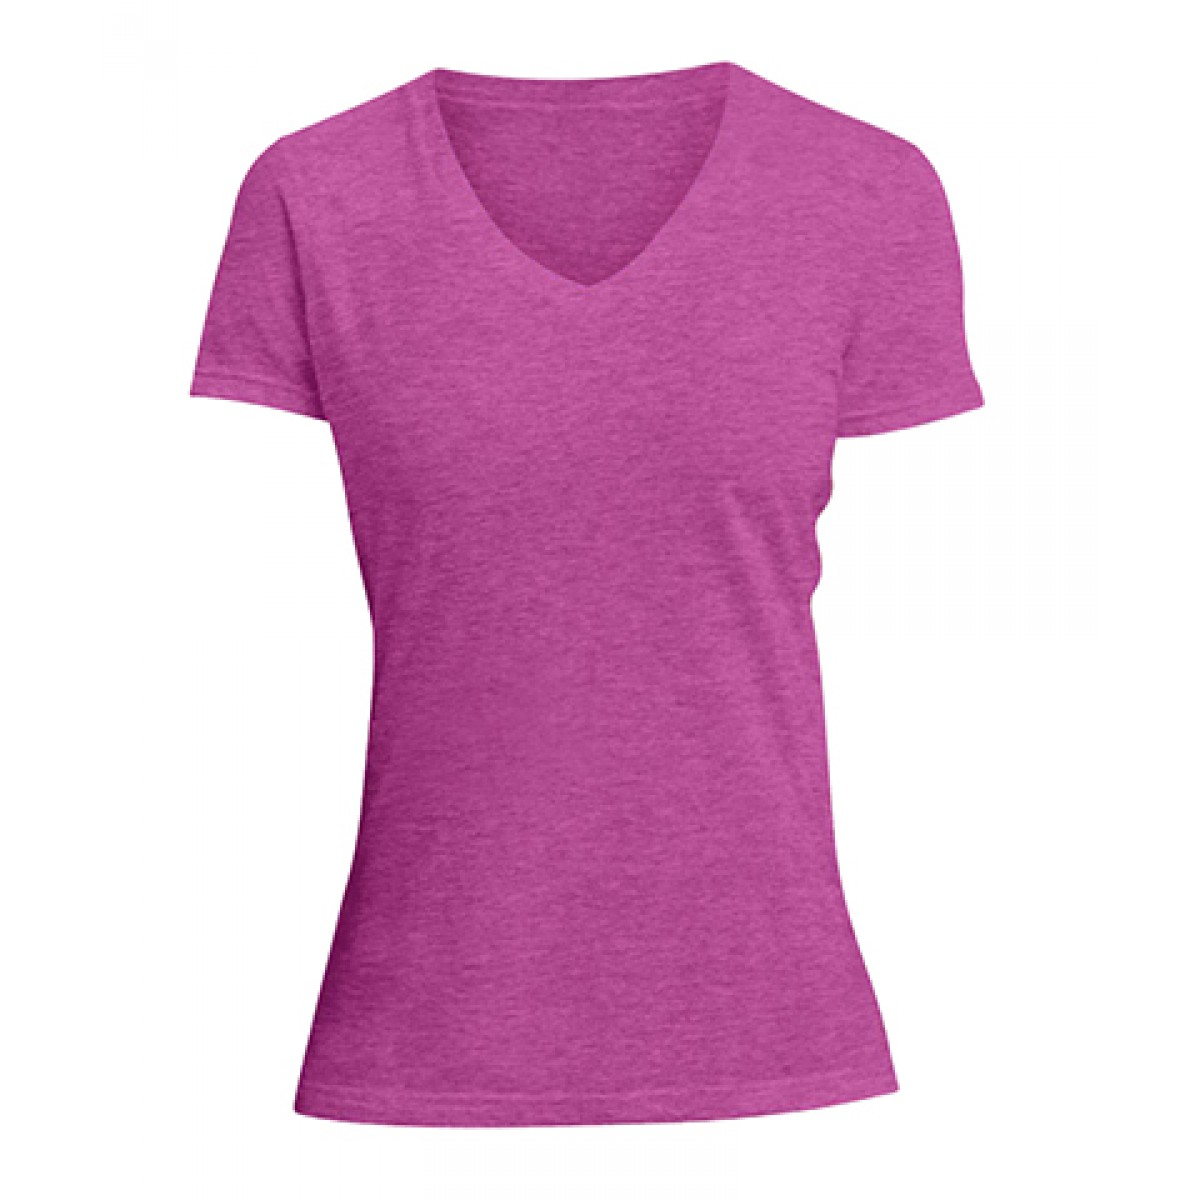 Ladies V-Neck Tee-Heathered Fuscia-3XL